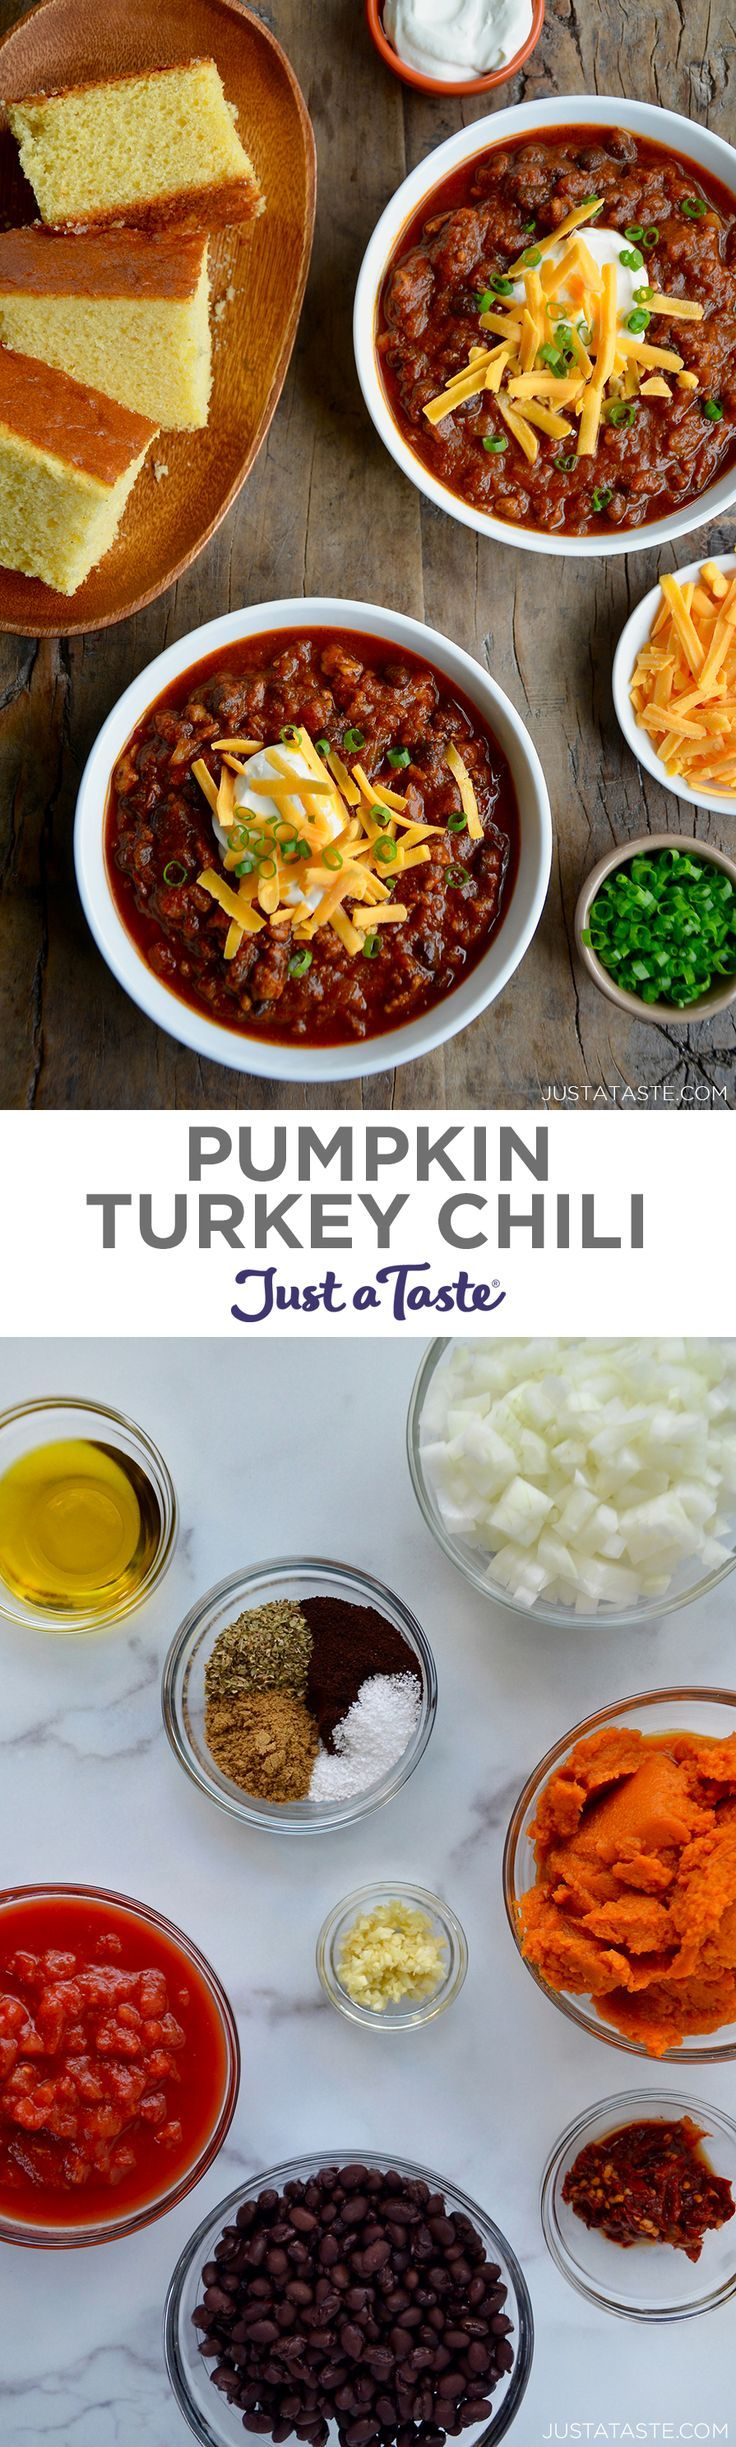 This easy Pumpkin Turkey Chili recipe is everything you ...